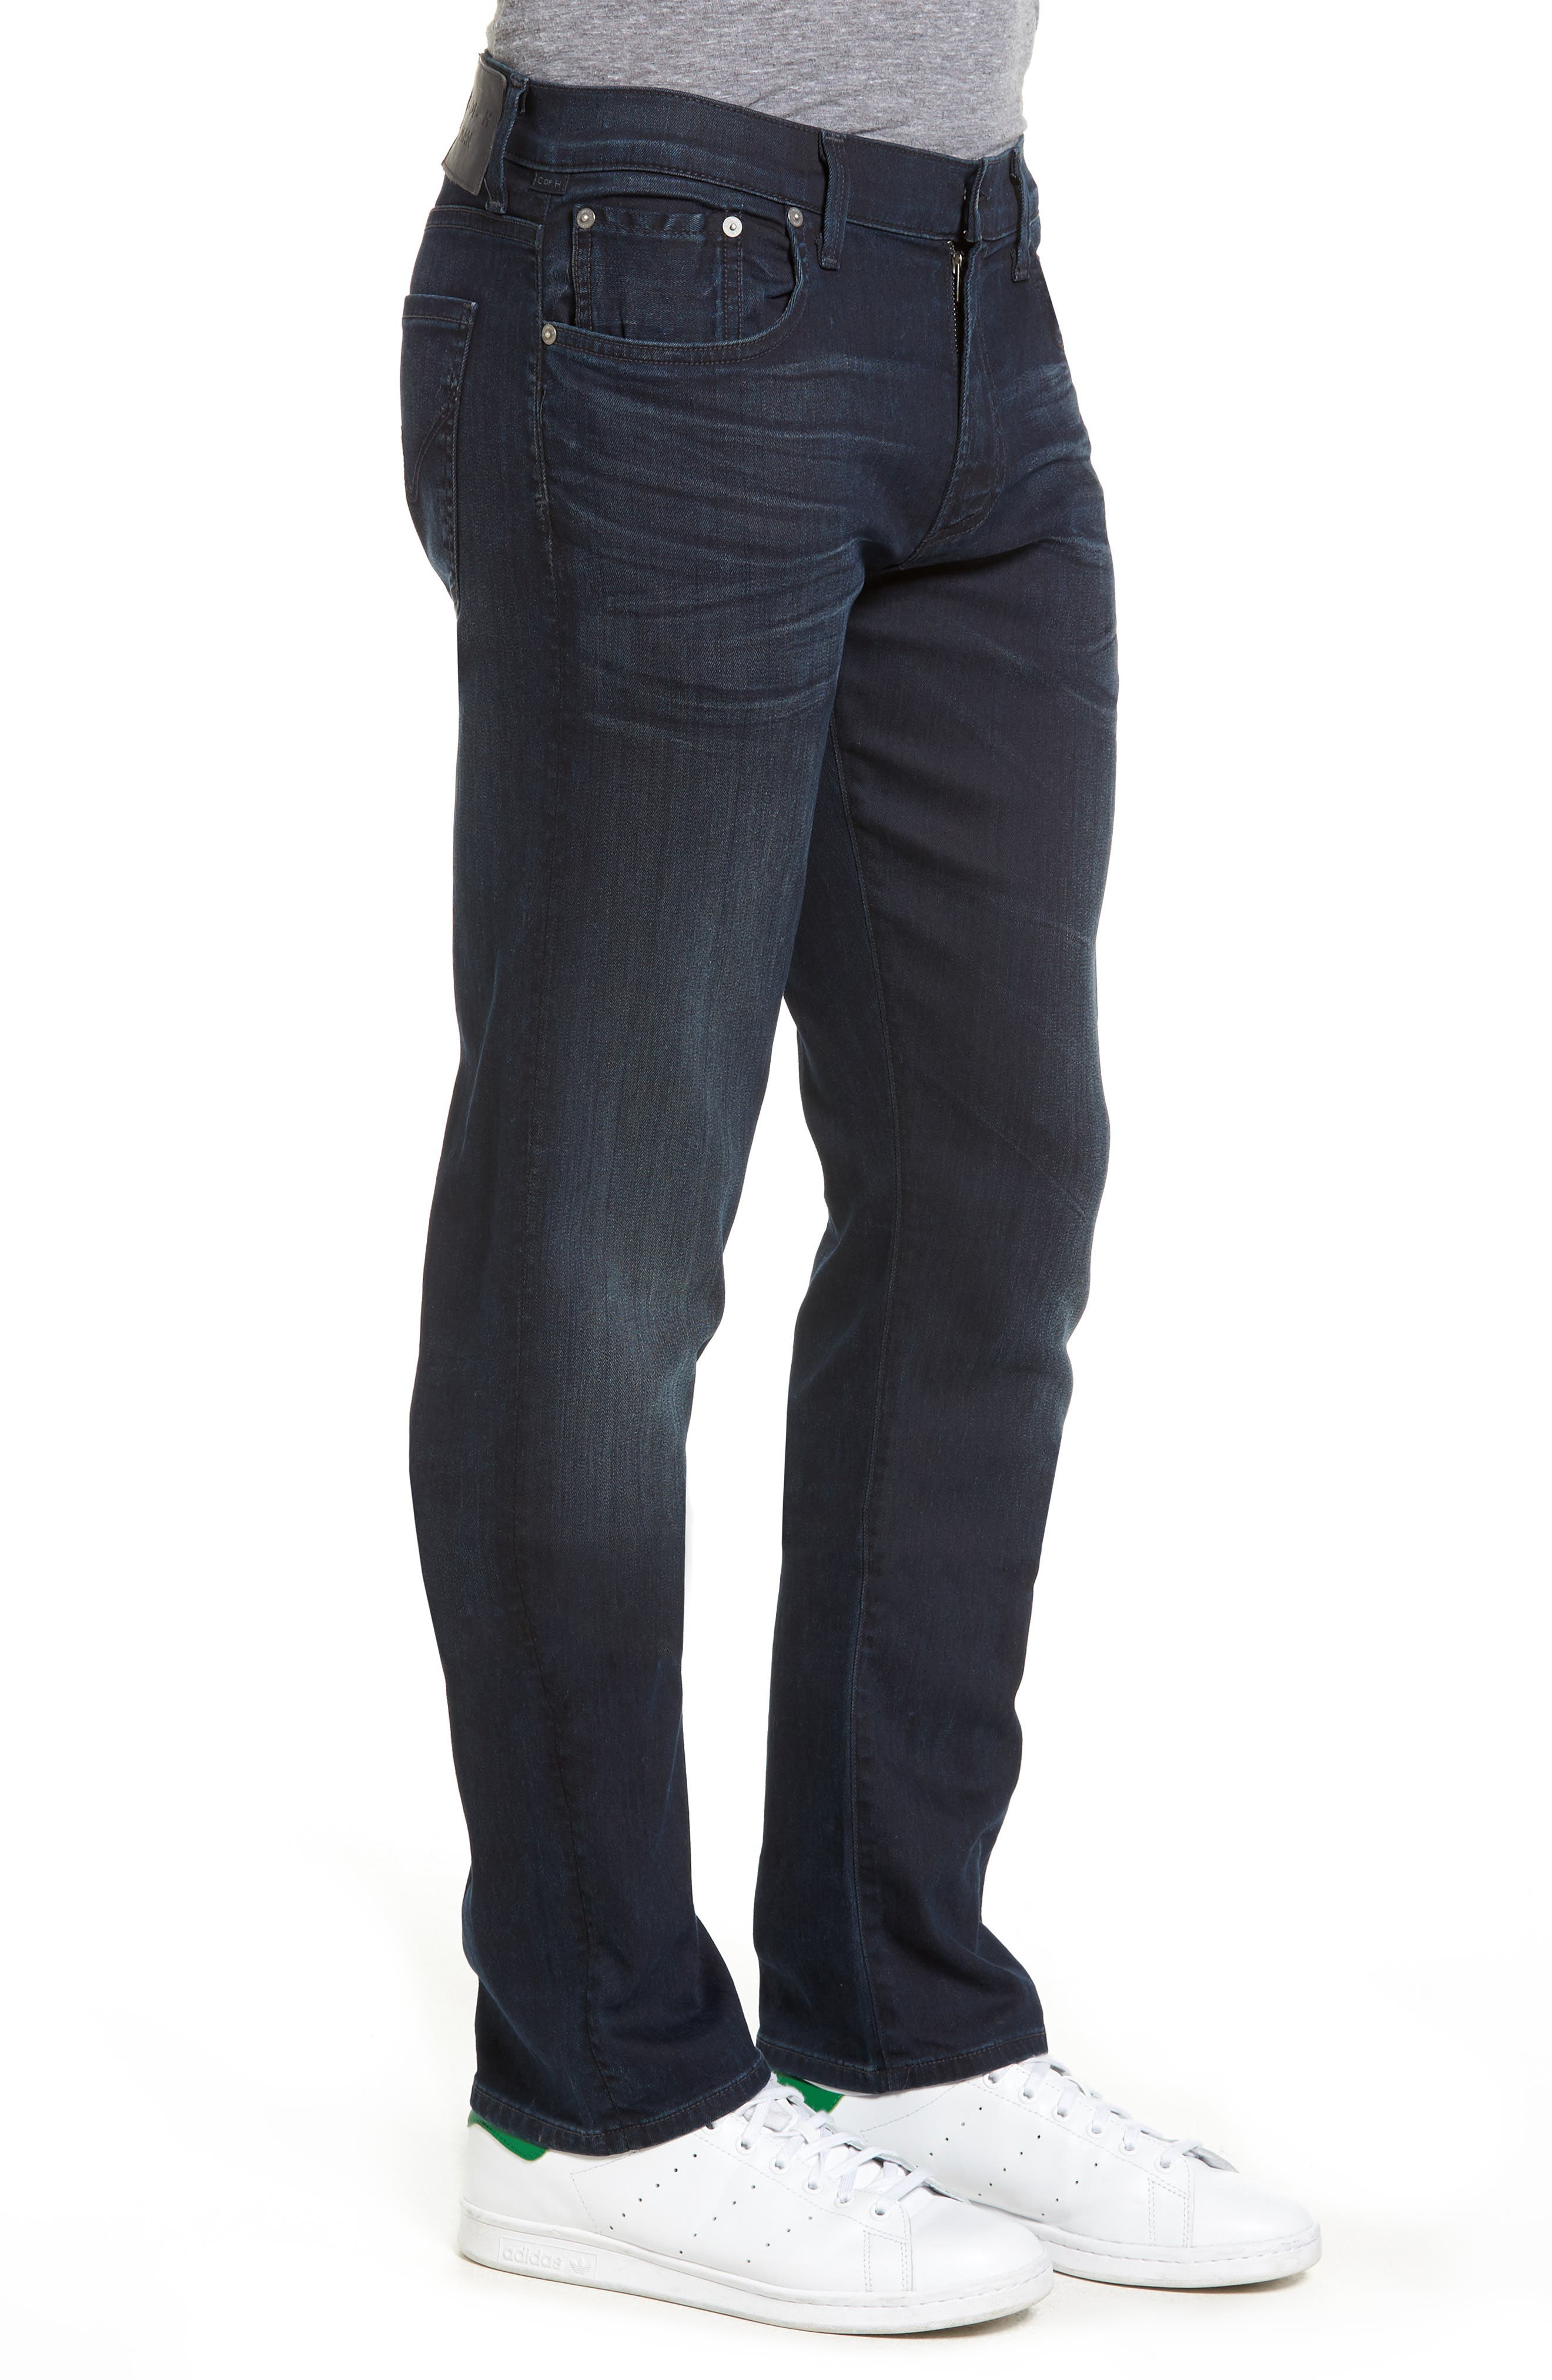 Core Slim Straight Leg Jeans,                             Alternate thumbnail 3, color,                             DURANT